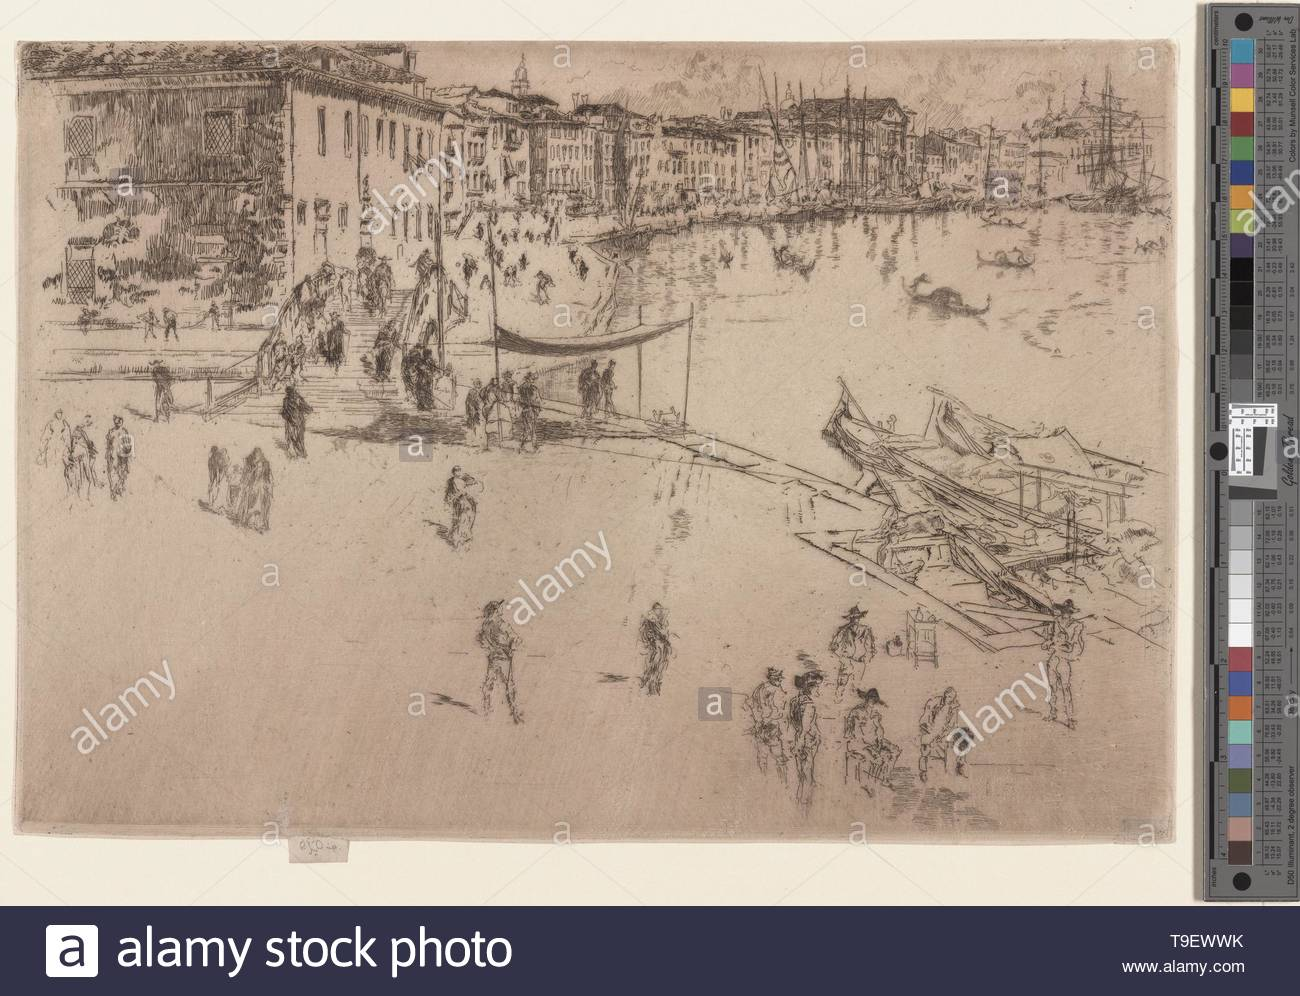 Whistler,JamesMcNeill(1834-1903)-The riva, no  2 - Stock Image